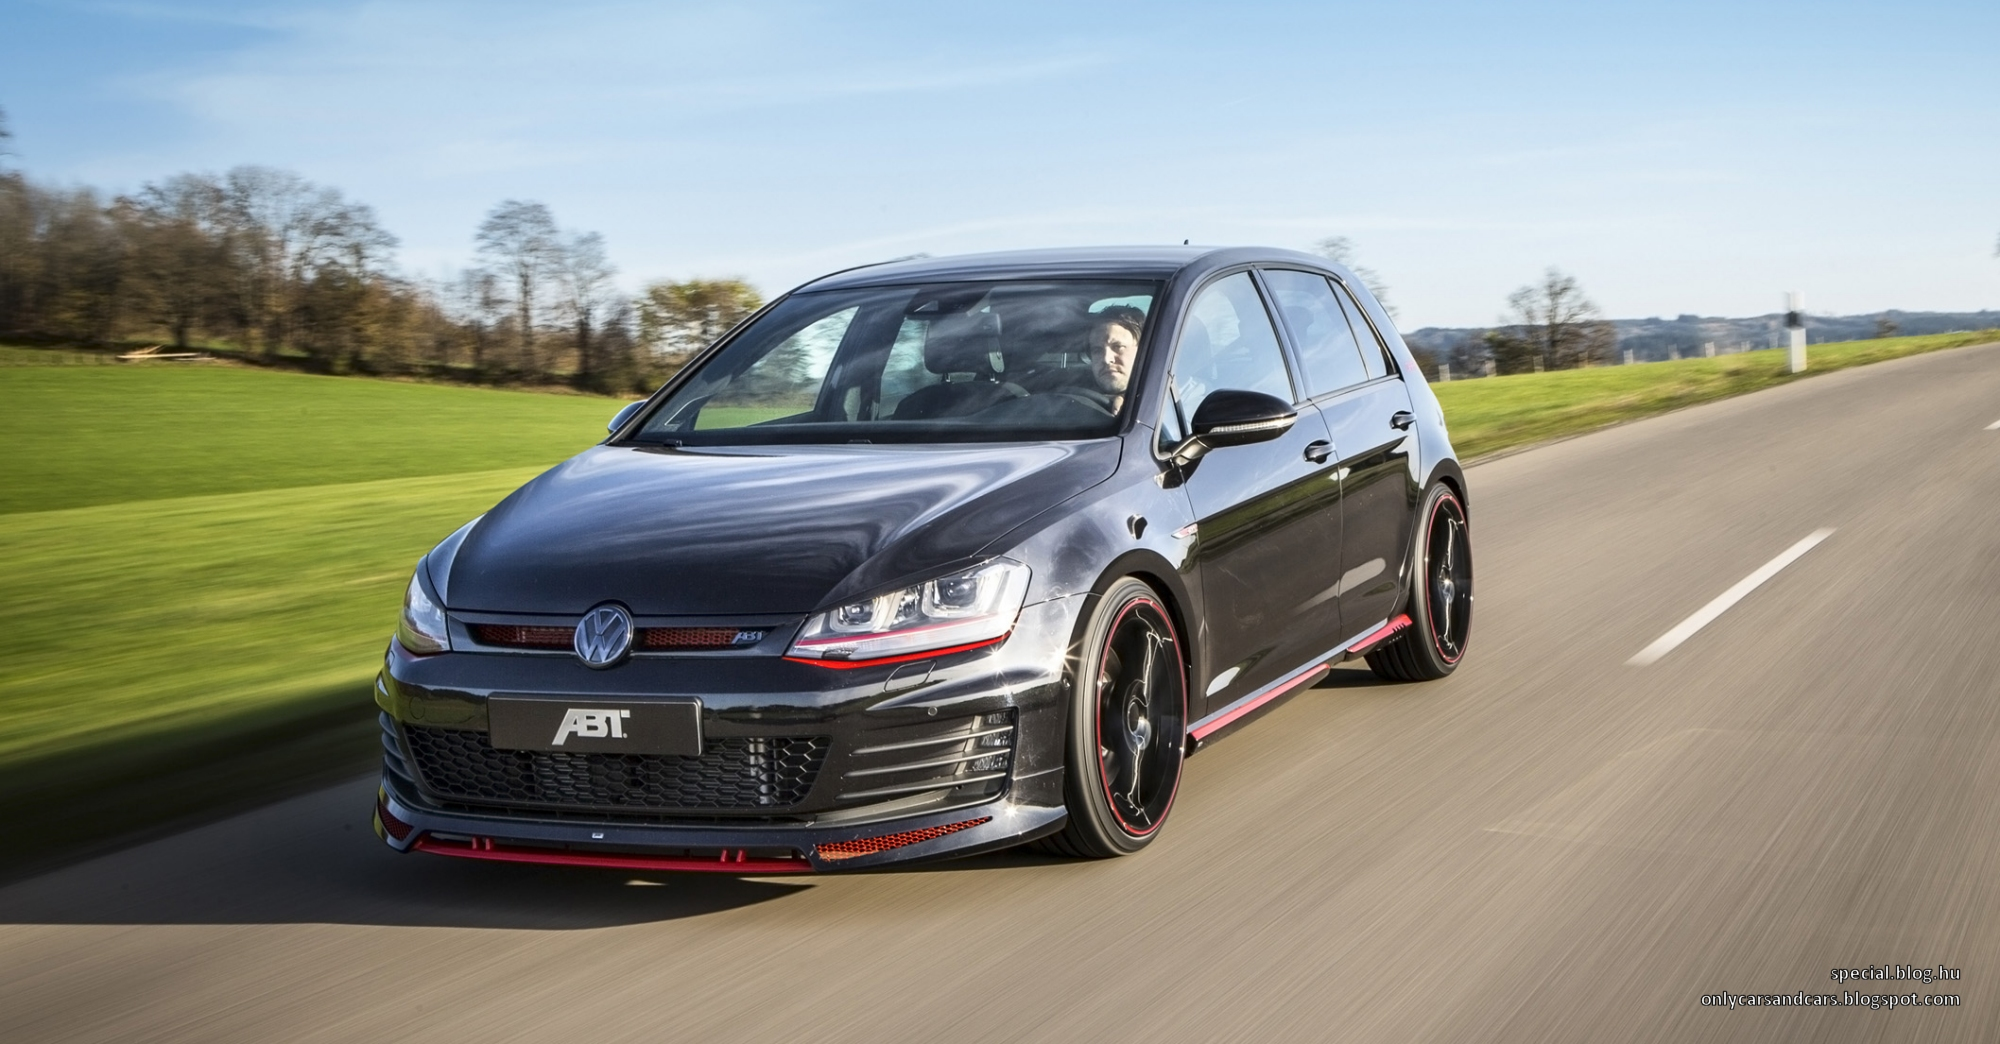 volkswagen golf vii gti dark edition by abt only cars and cars. Black Bedroom Furniture Sets. Home Design Ideas